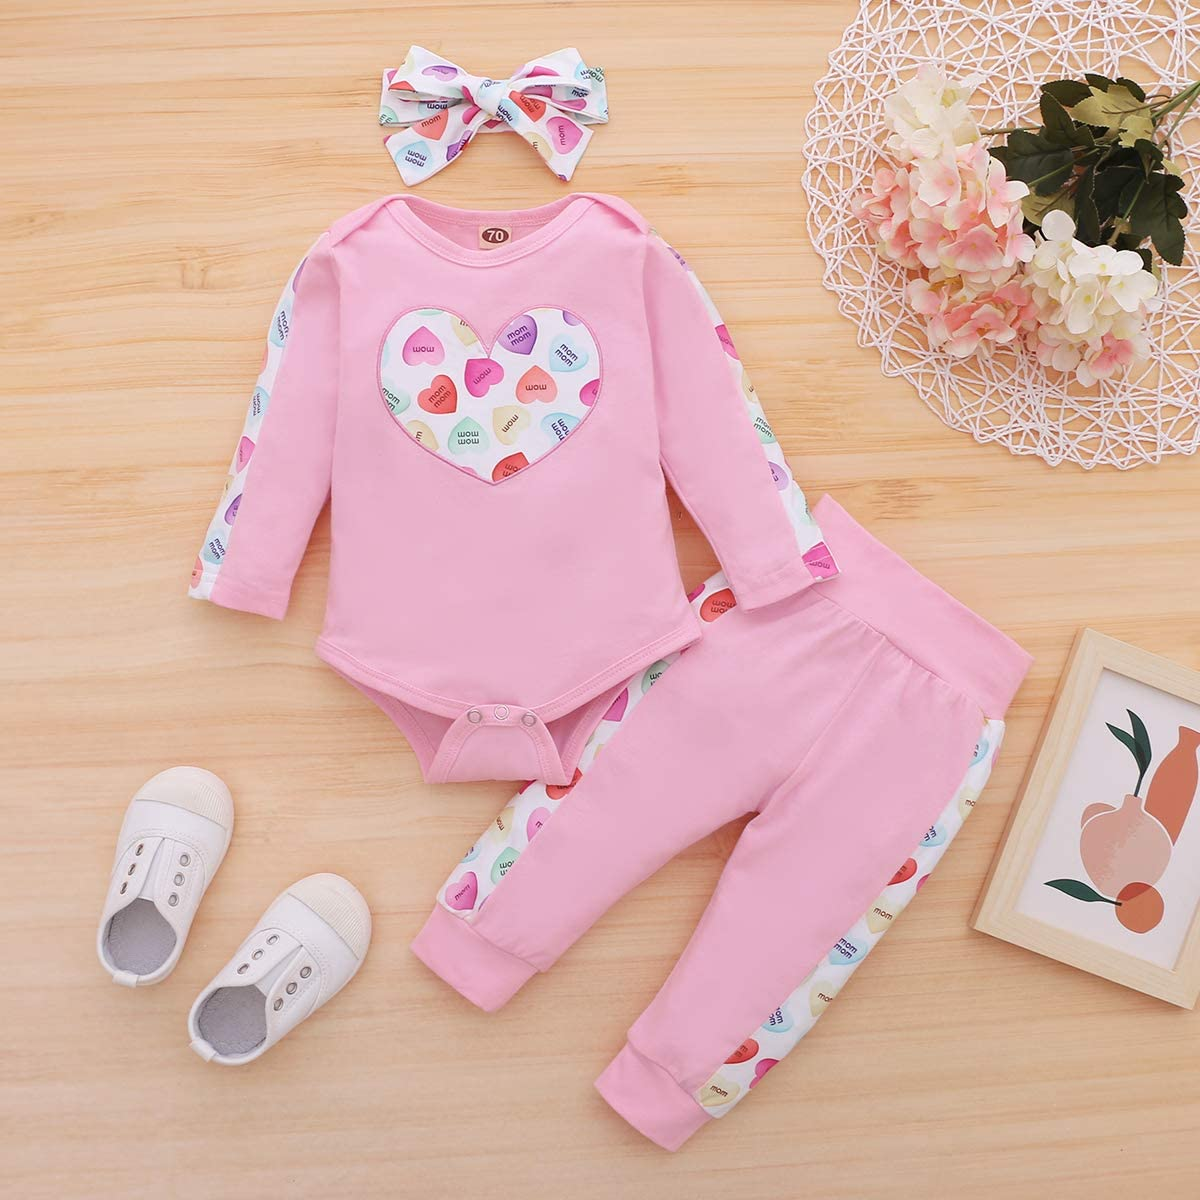 TUEMOS Newborn Baby Boy Girl Valentine/'s Day Cute Clothes Long Sleeve Romper Jumpsuit with Hat 2Pcs Outfit Set